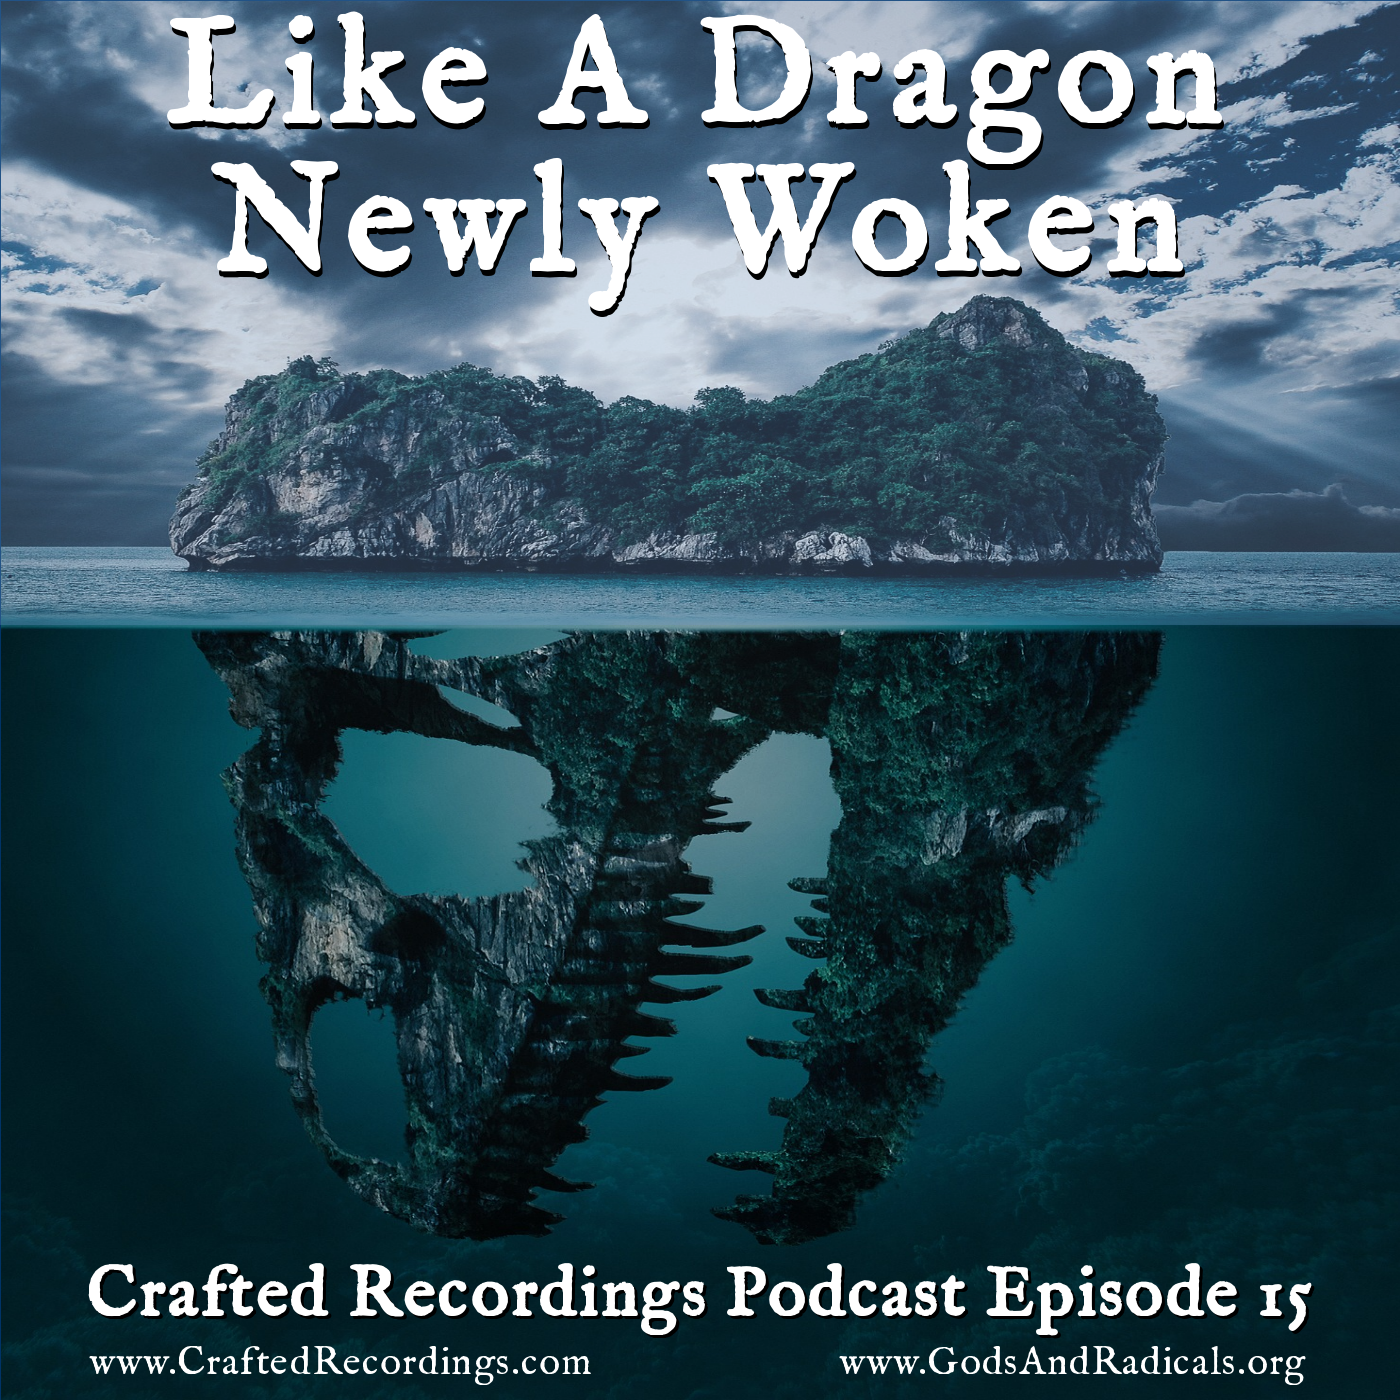 Podcast Episode 15: Like A Dragon Newly Woken